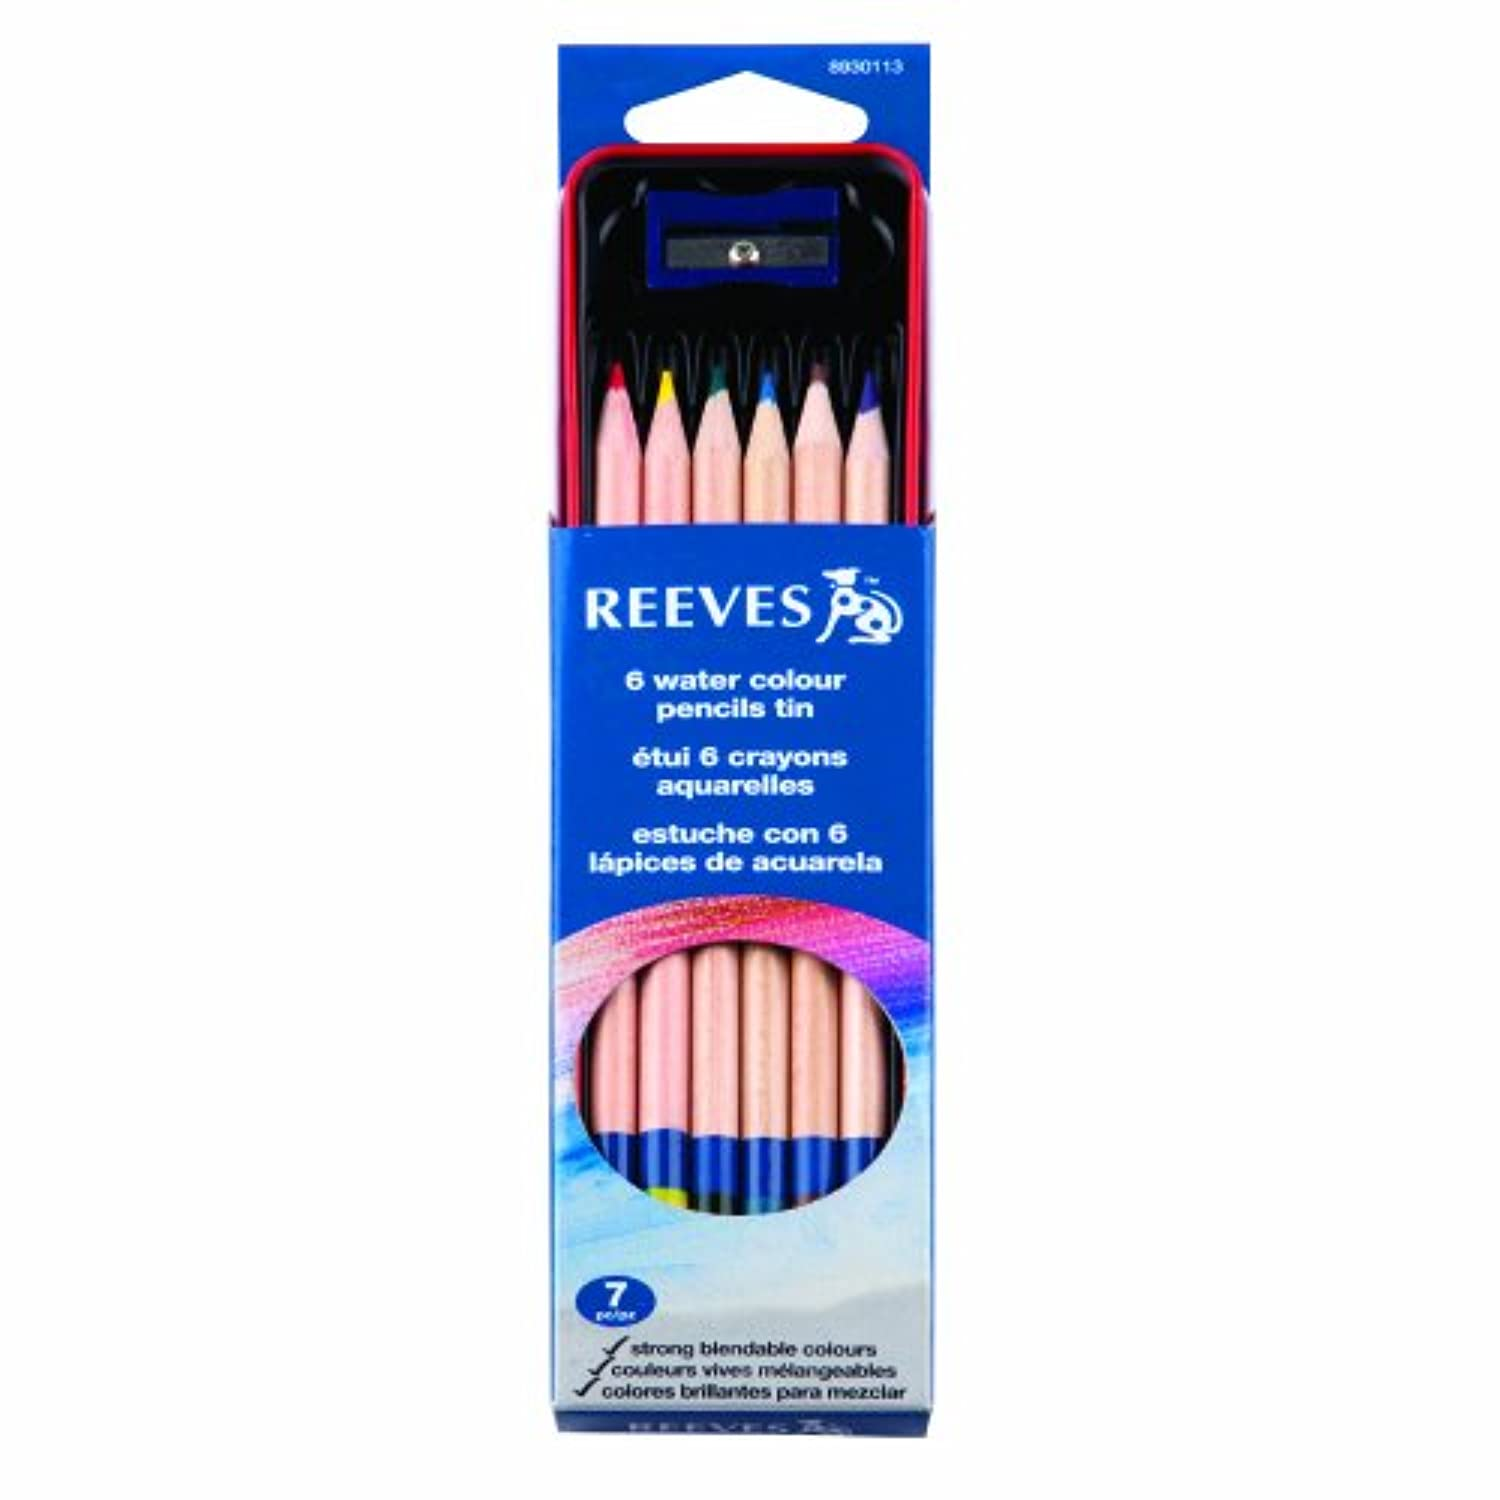 Reeves Tin Set, Water Colour Pencil by Reeves